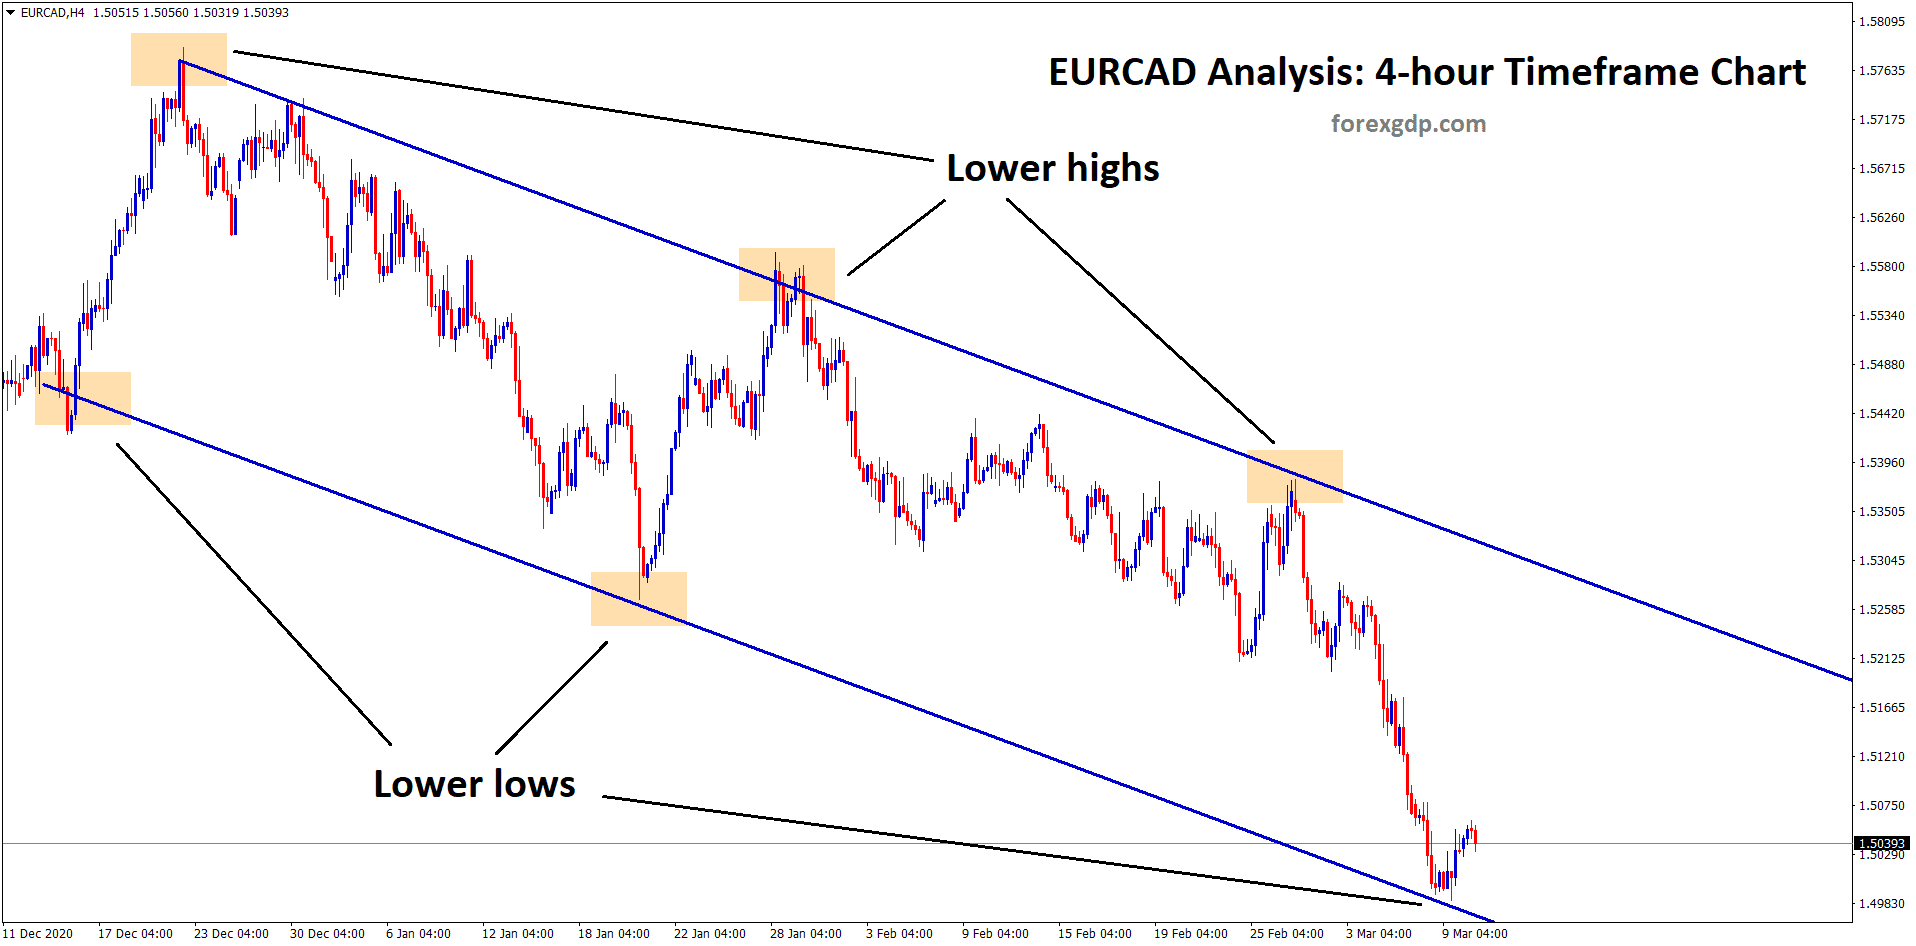 eurcad reached the lower low zone of the downtrend line